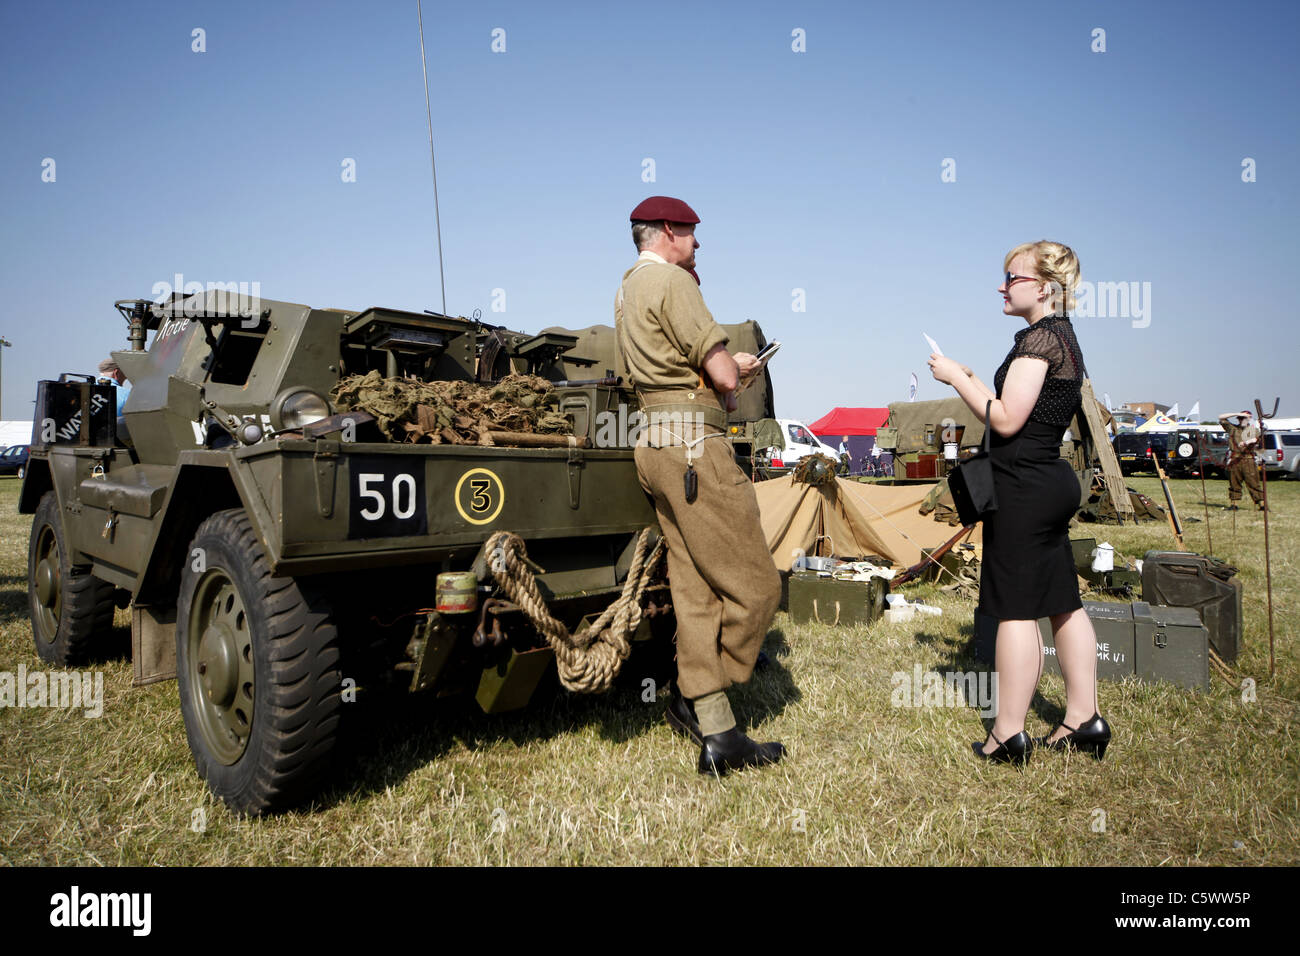 BRITISH ARMY PARATROOPER TALKS TO WOMAN WORLD WAR II HISTORIC DISPLAY 03 July 2011 - Stock Image